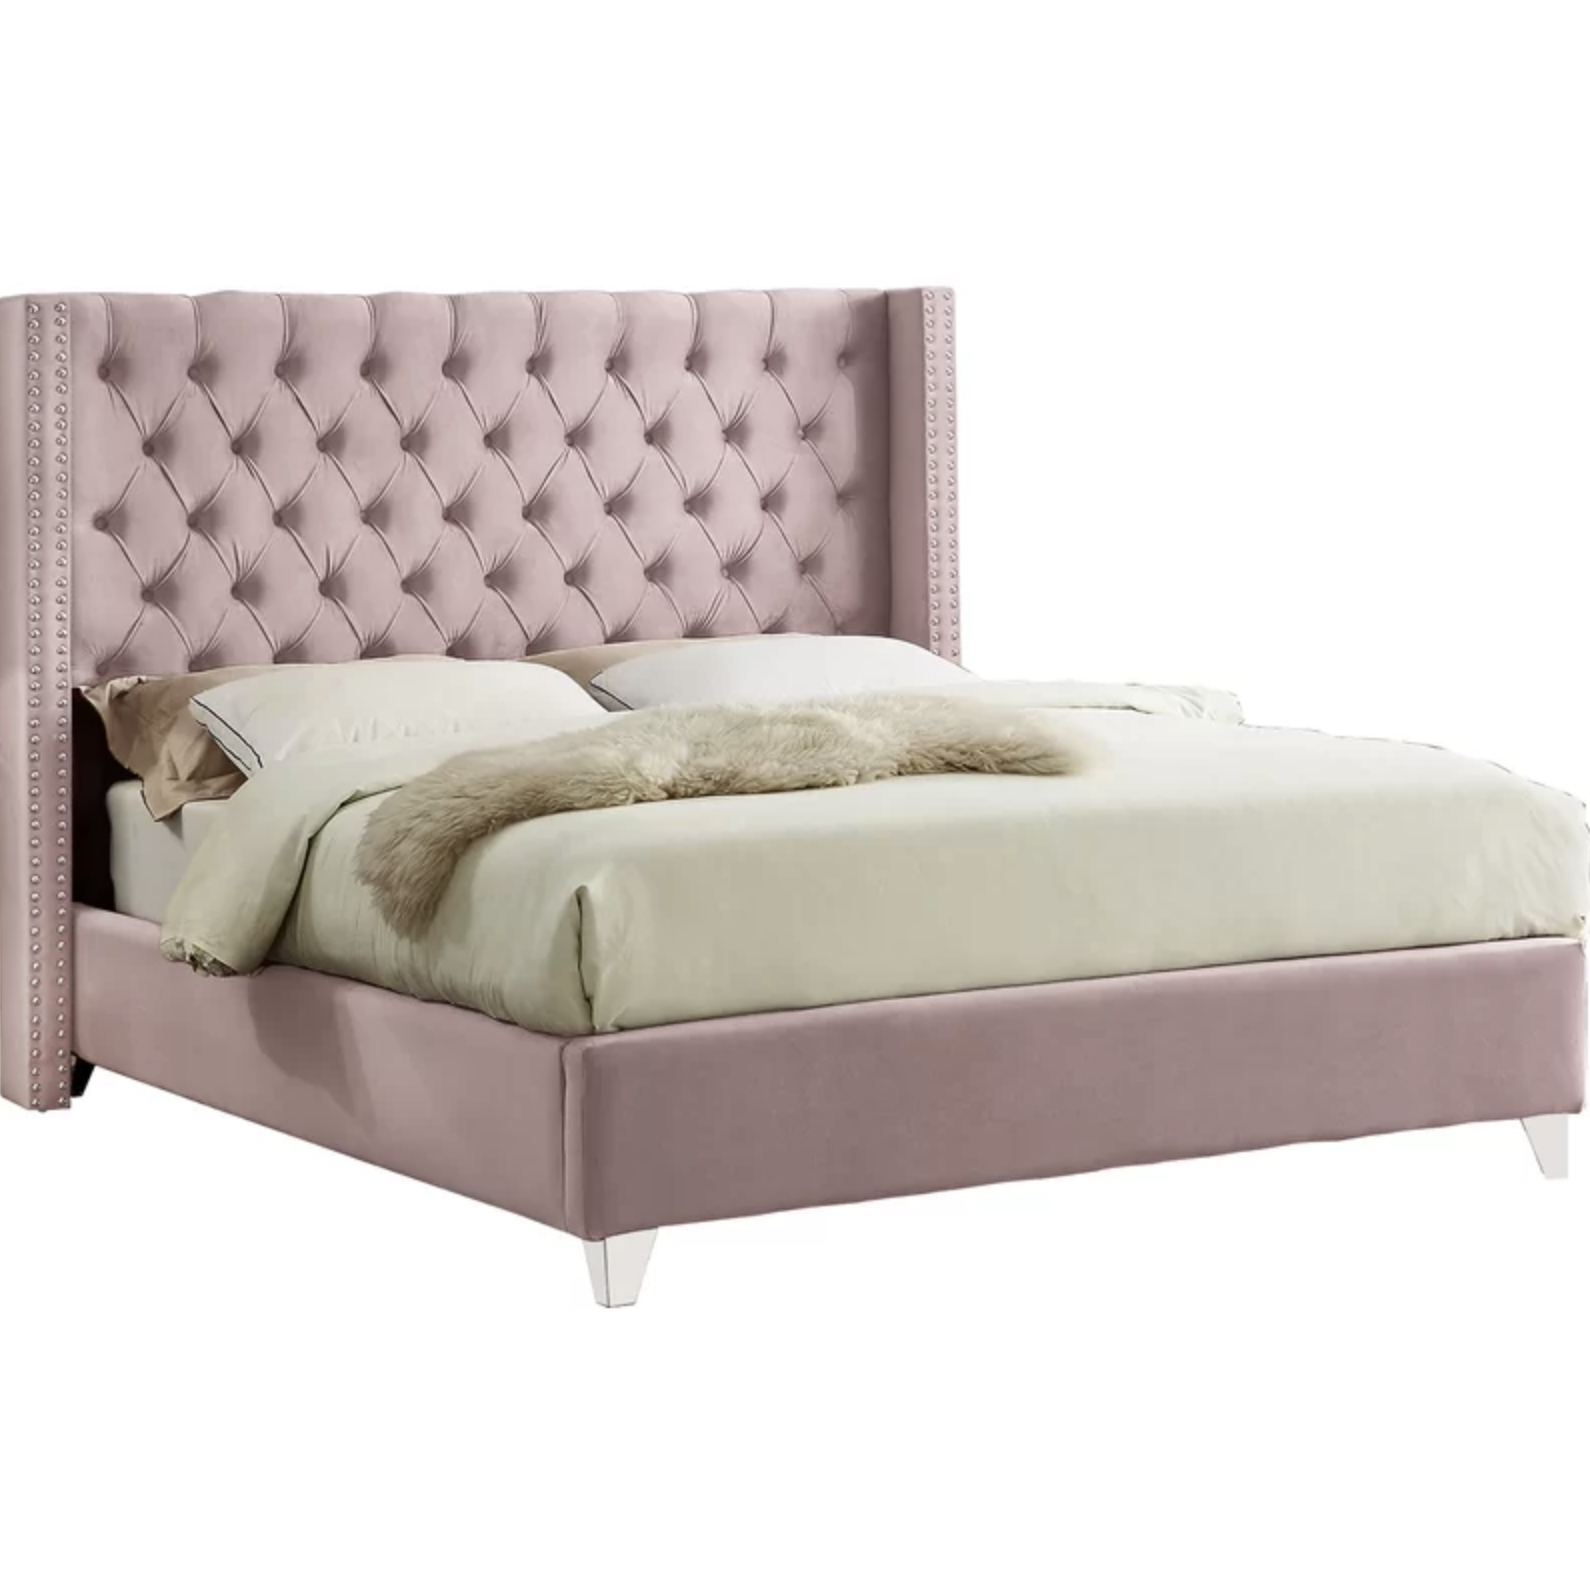 tufted pink velvet bed